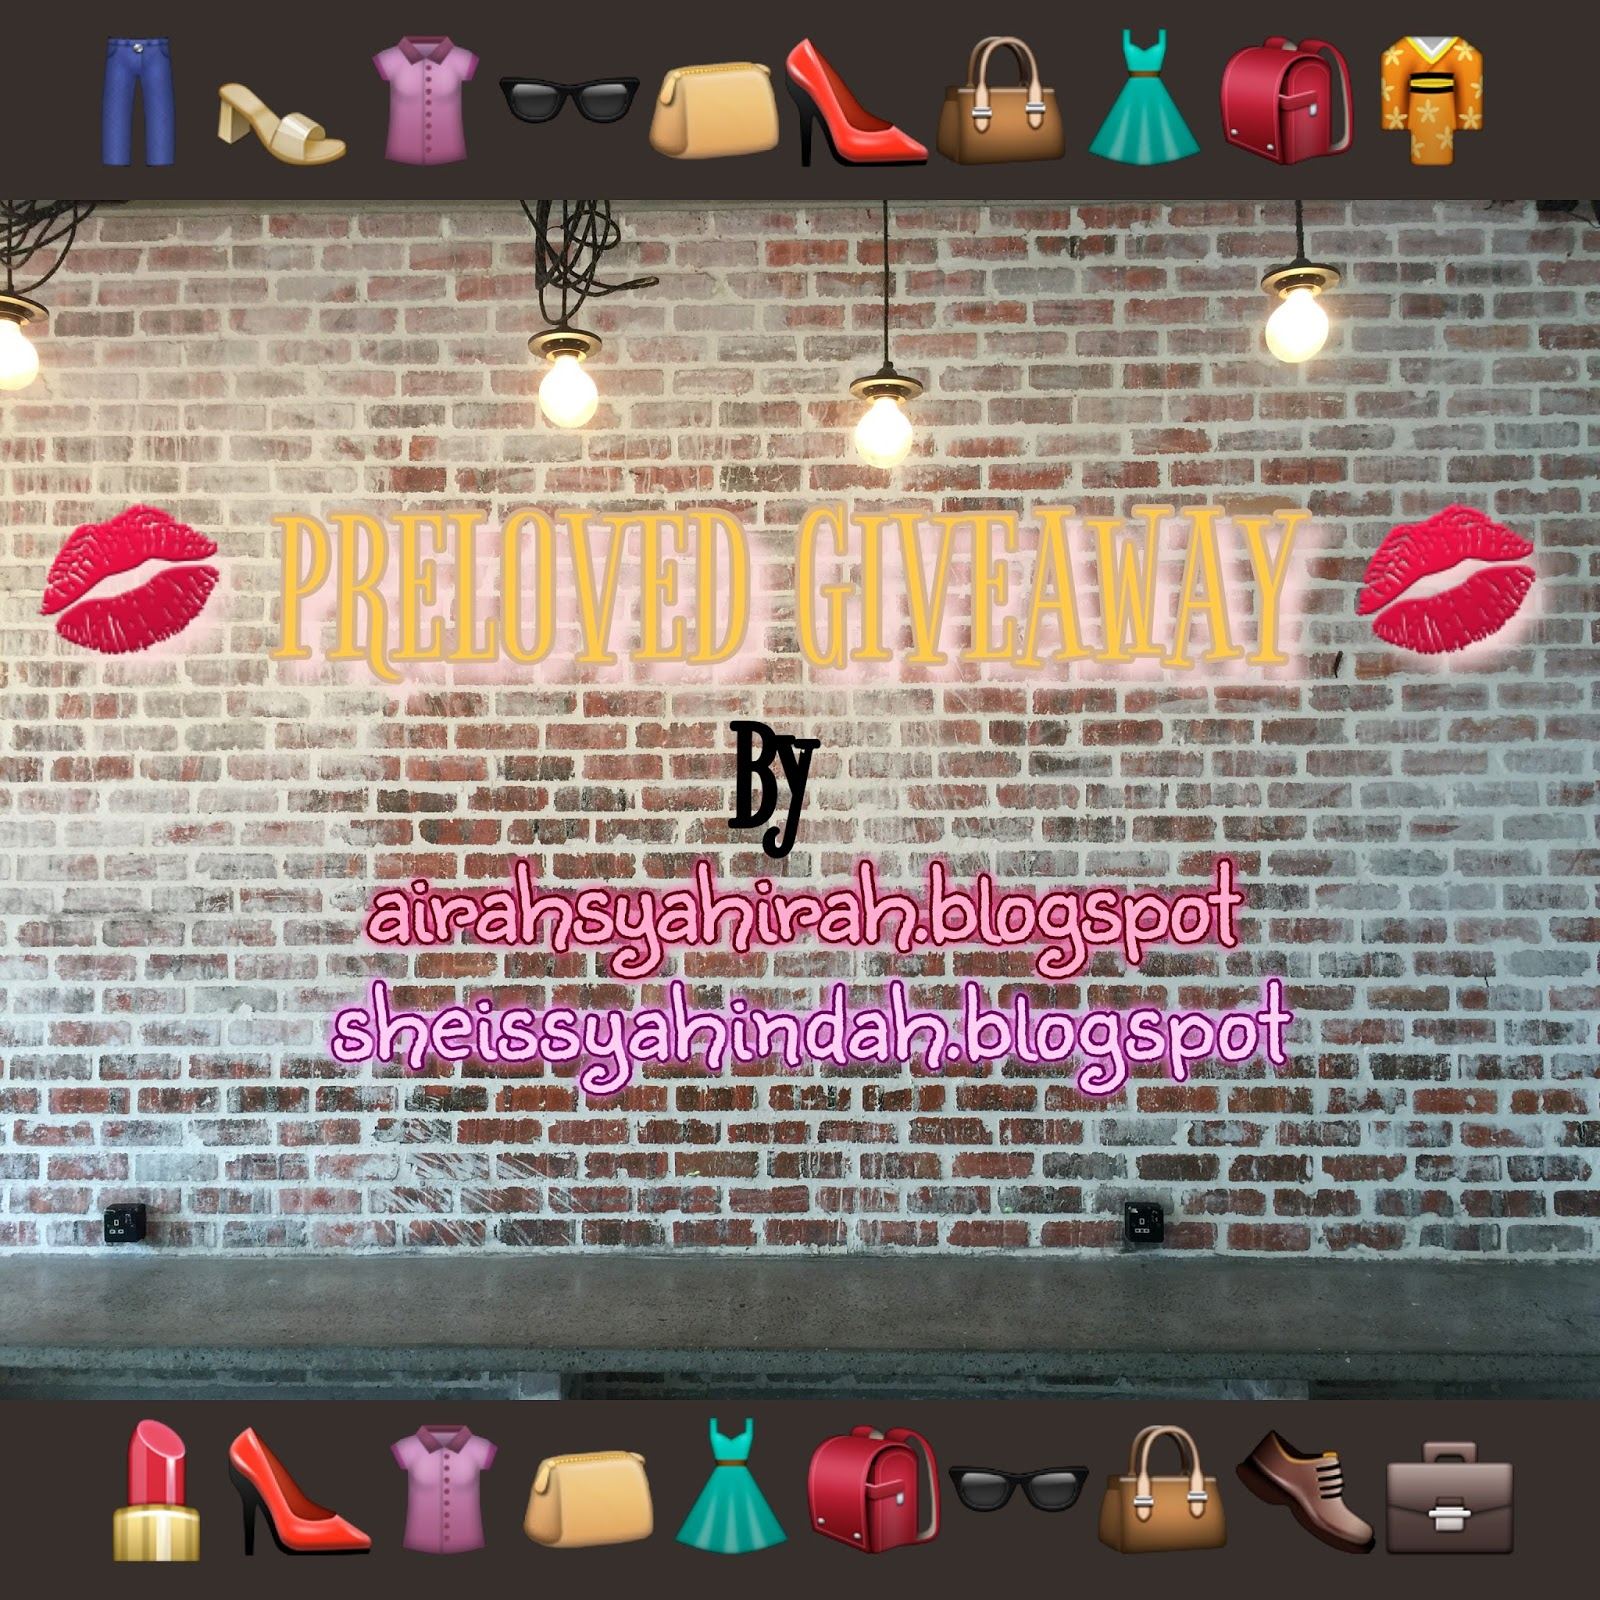 PRELOVED GIVEAWAY OLEH AA